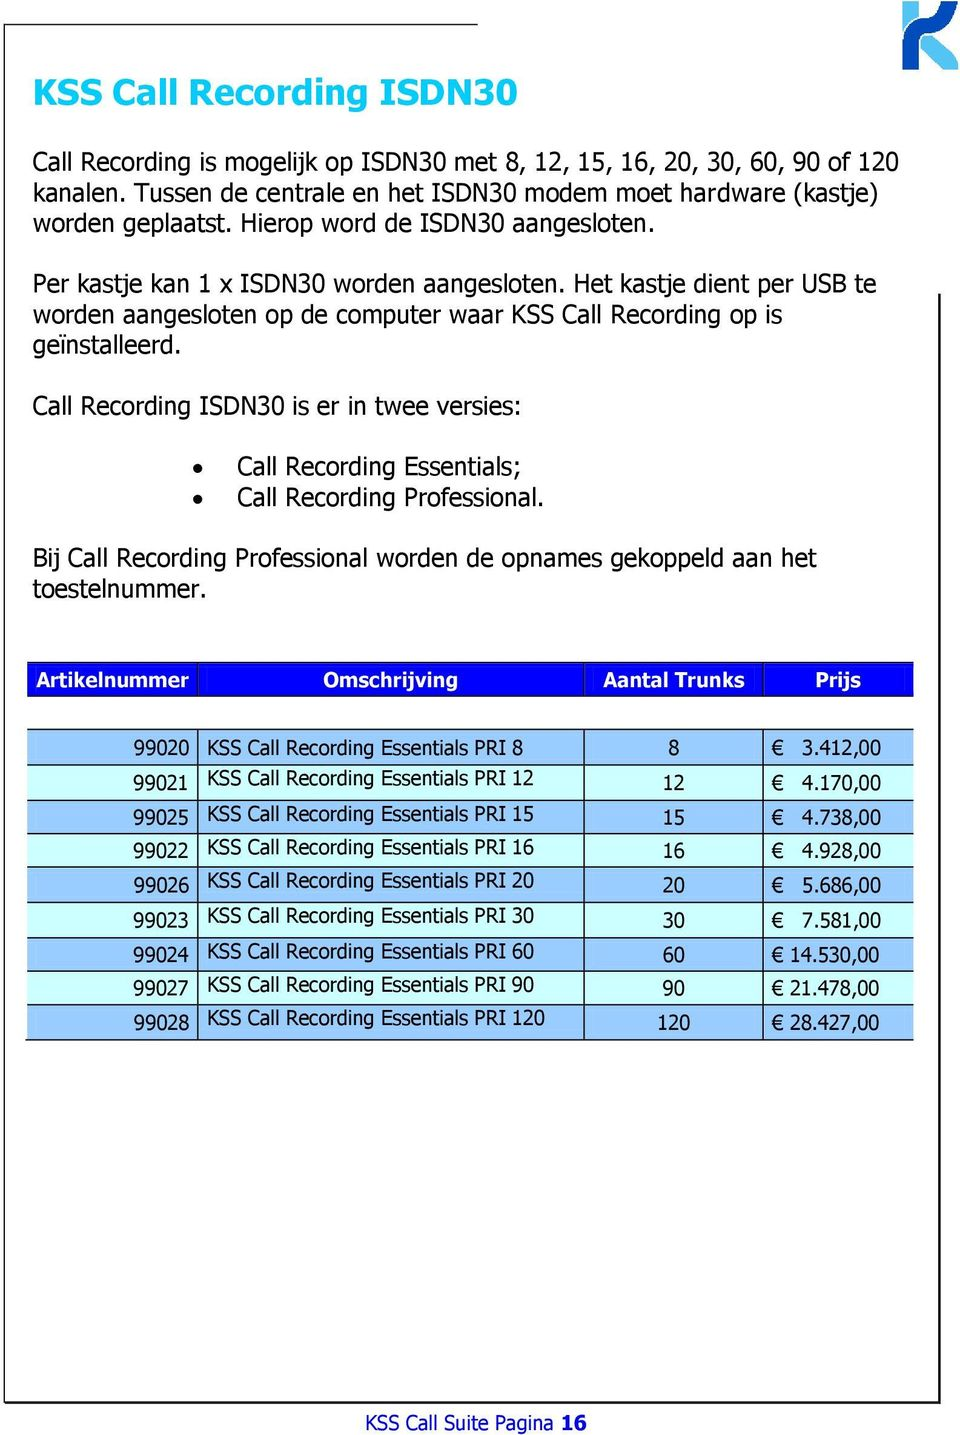 Call Recording ISDN30 is er in twee versies: Call Recording Essentials; Call Recording Professional. Bij Call Recording Professional worden de opnames gekoppeld aan het toestelnummer.